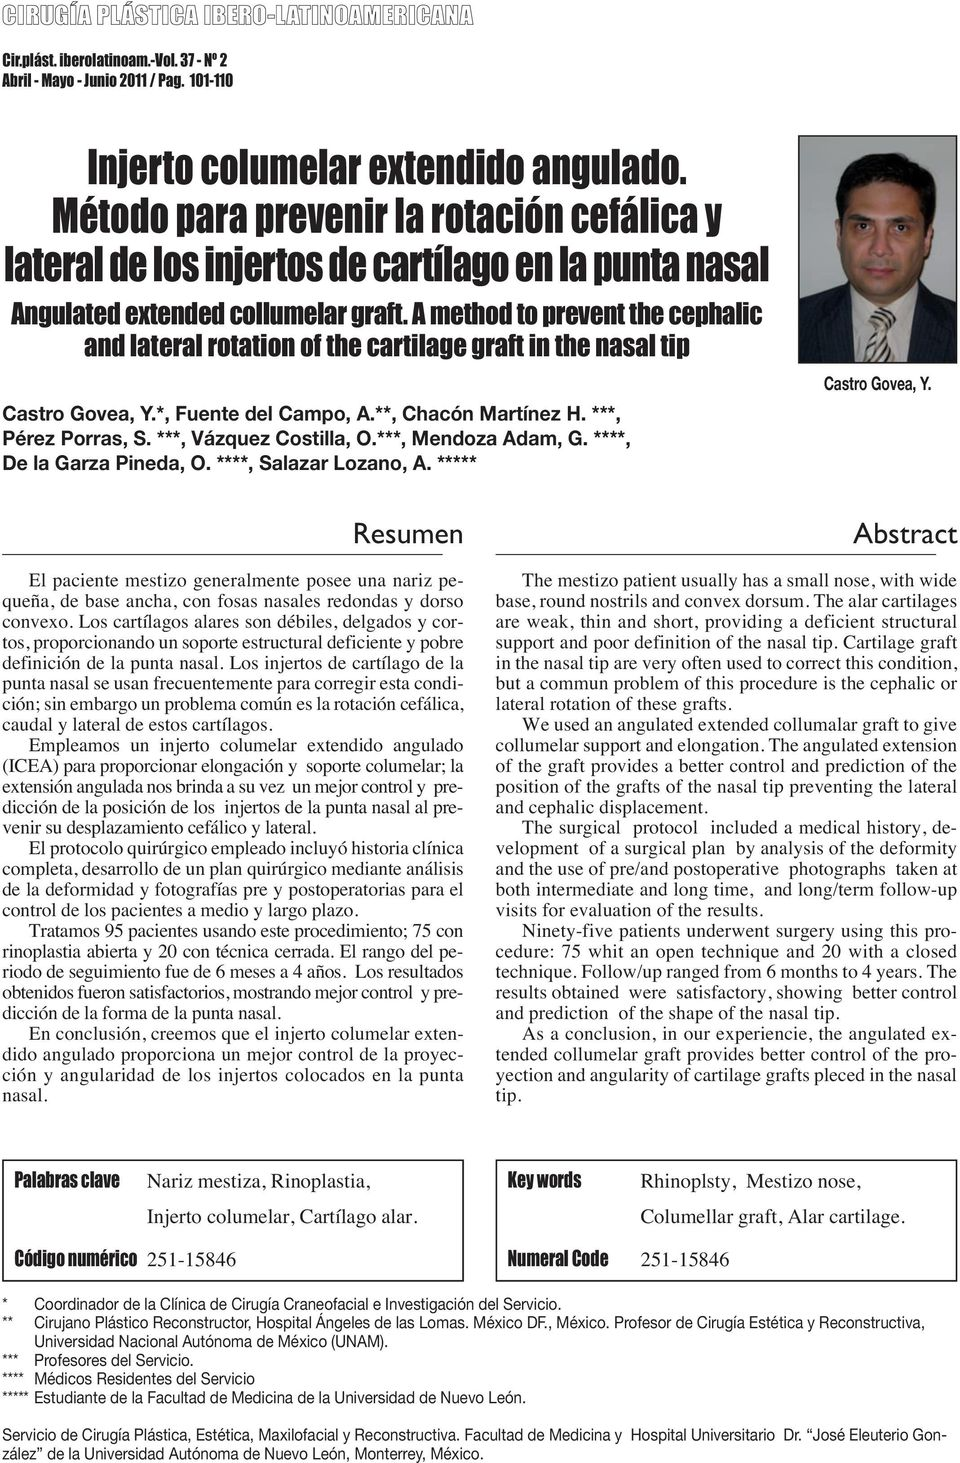 method to prevent the cephalic and lateral rotation of the cartilage graft in the nasal tip Castro Govea, Y.*, Fuente del Campo,.**, Chacón Martínez H. ***, Pérez Porras, S. ***, Vázquez Costilla, O.